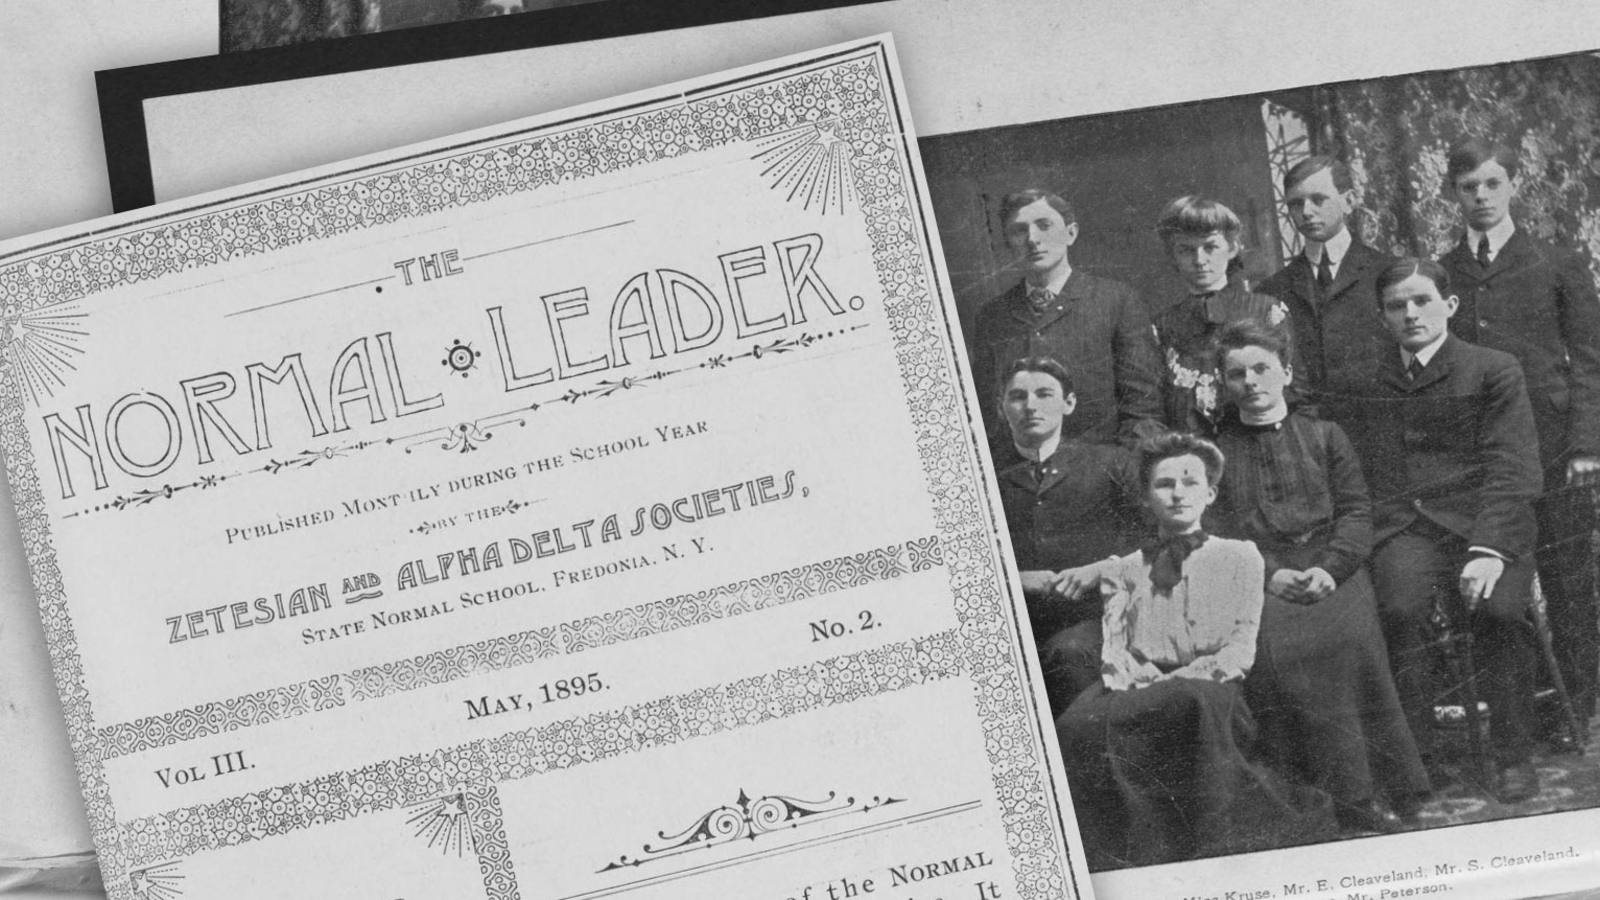 The Normal Leader school newspaper from 1895.